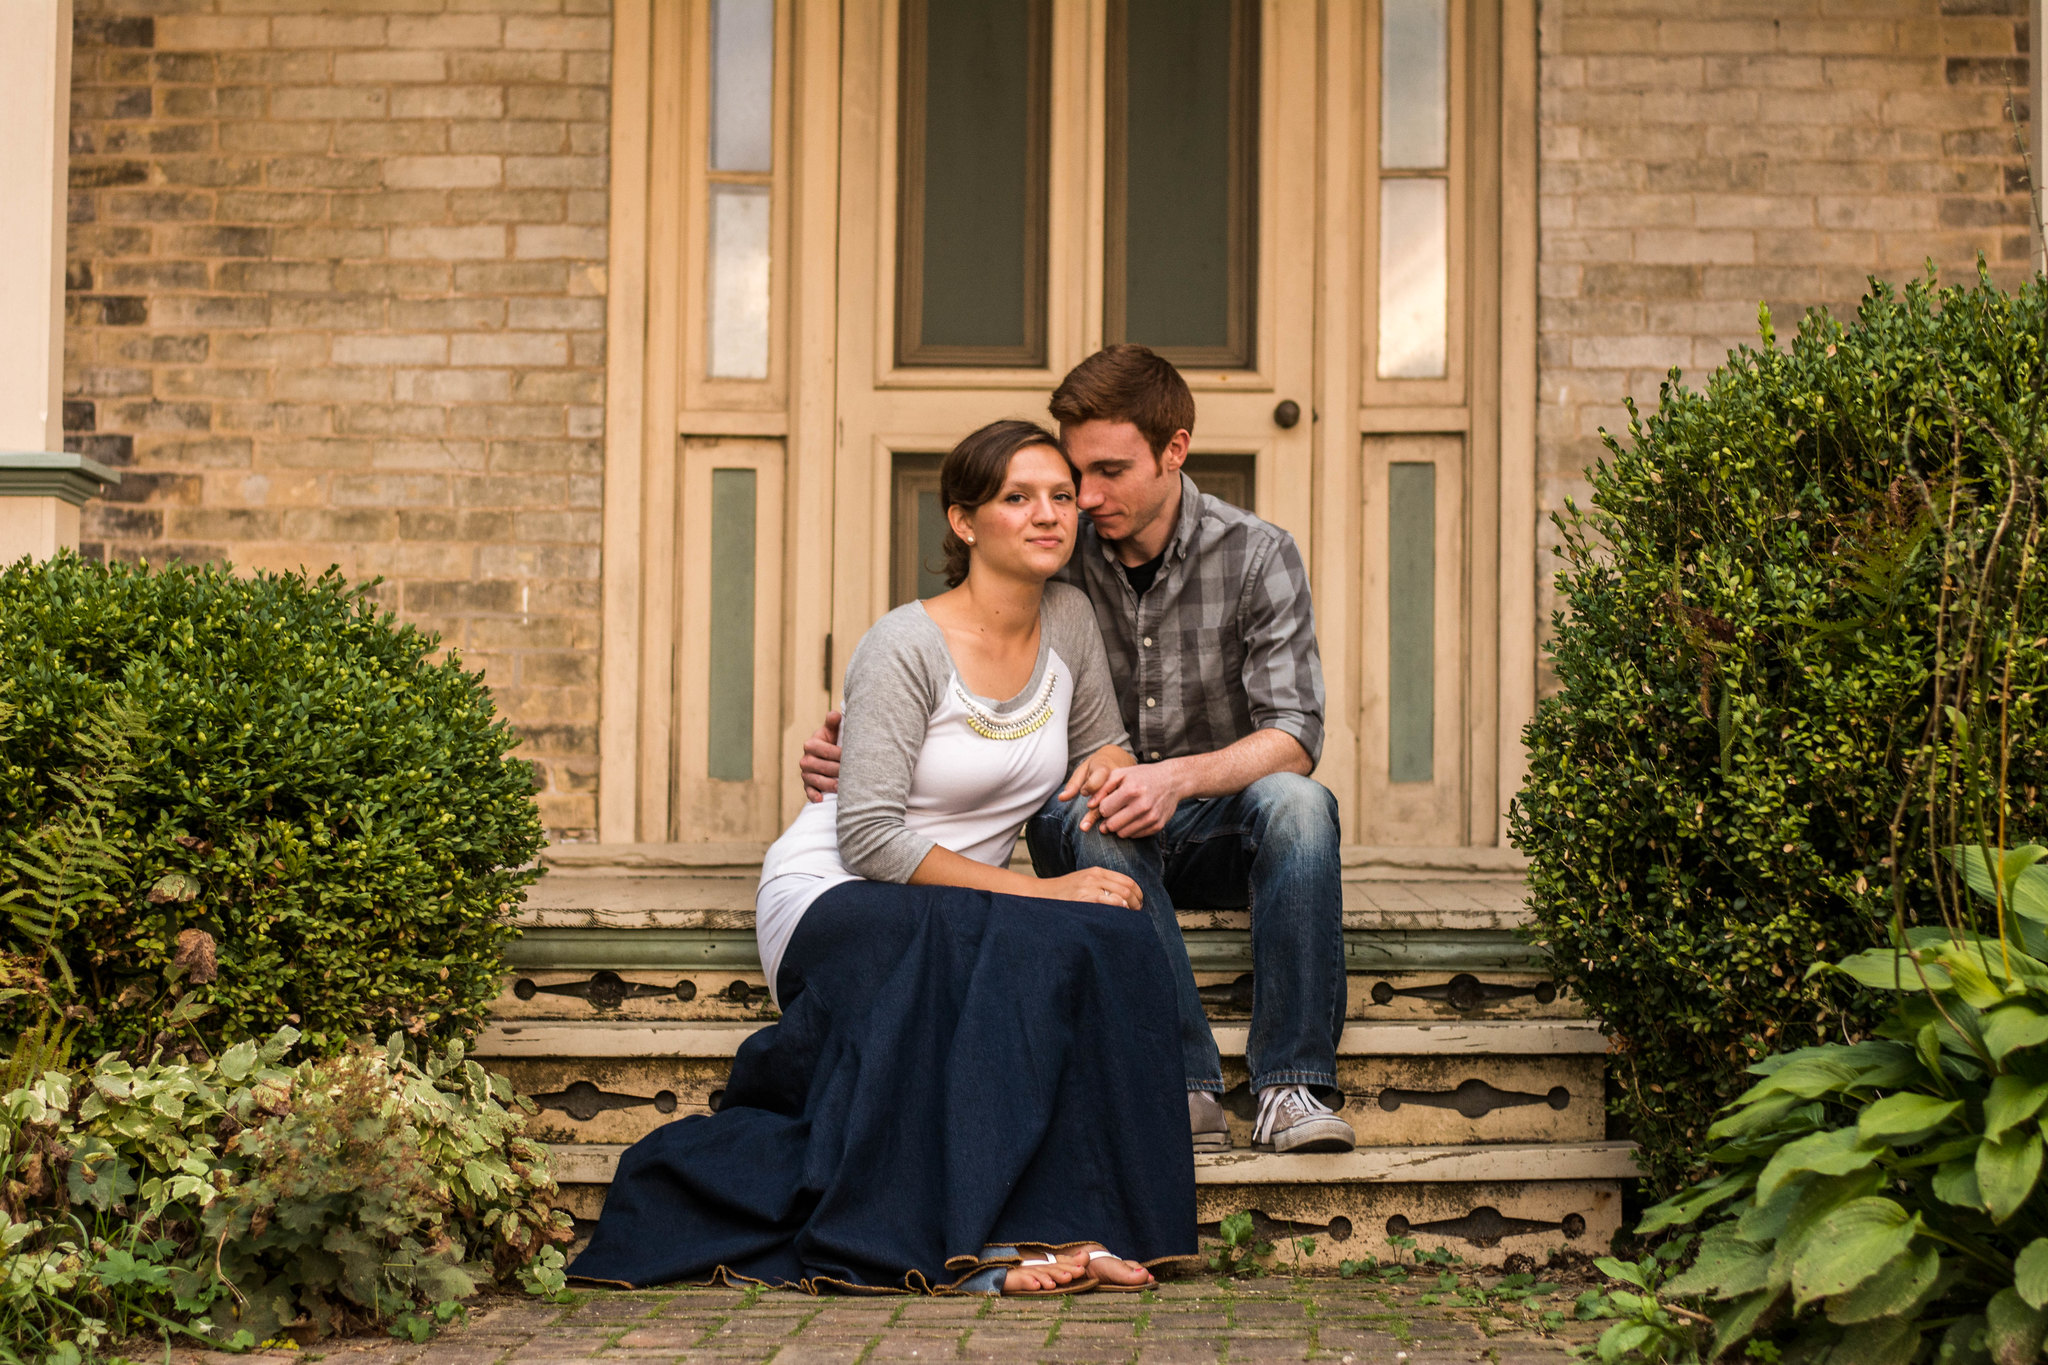 Ben & Elizabeth // Engaged